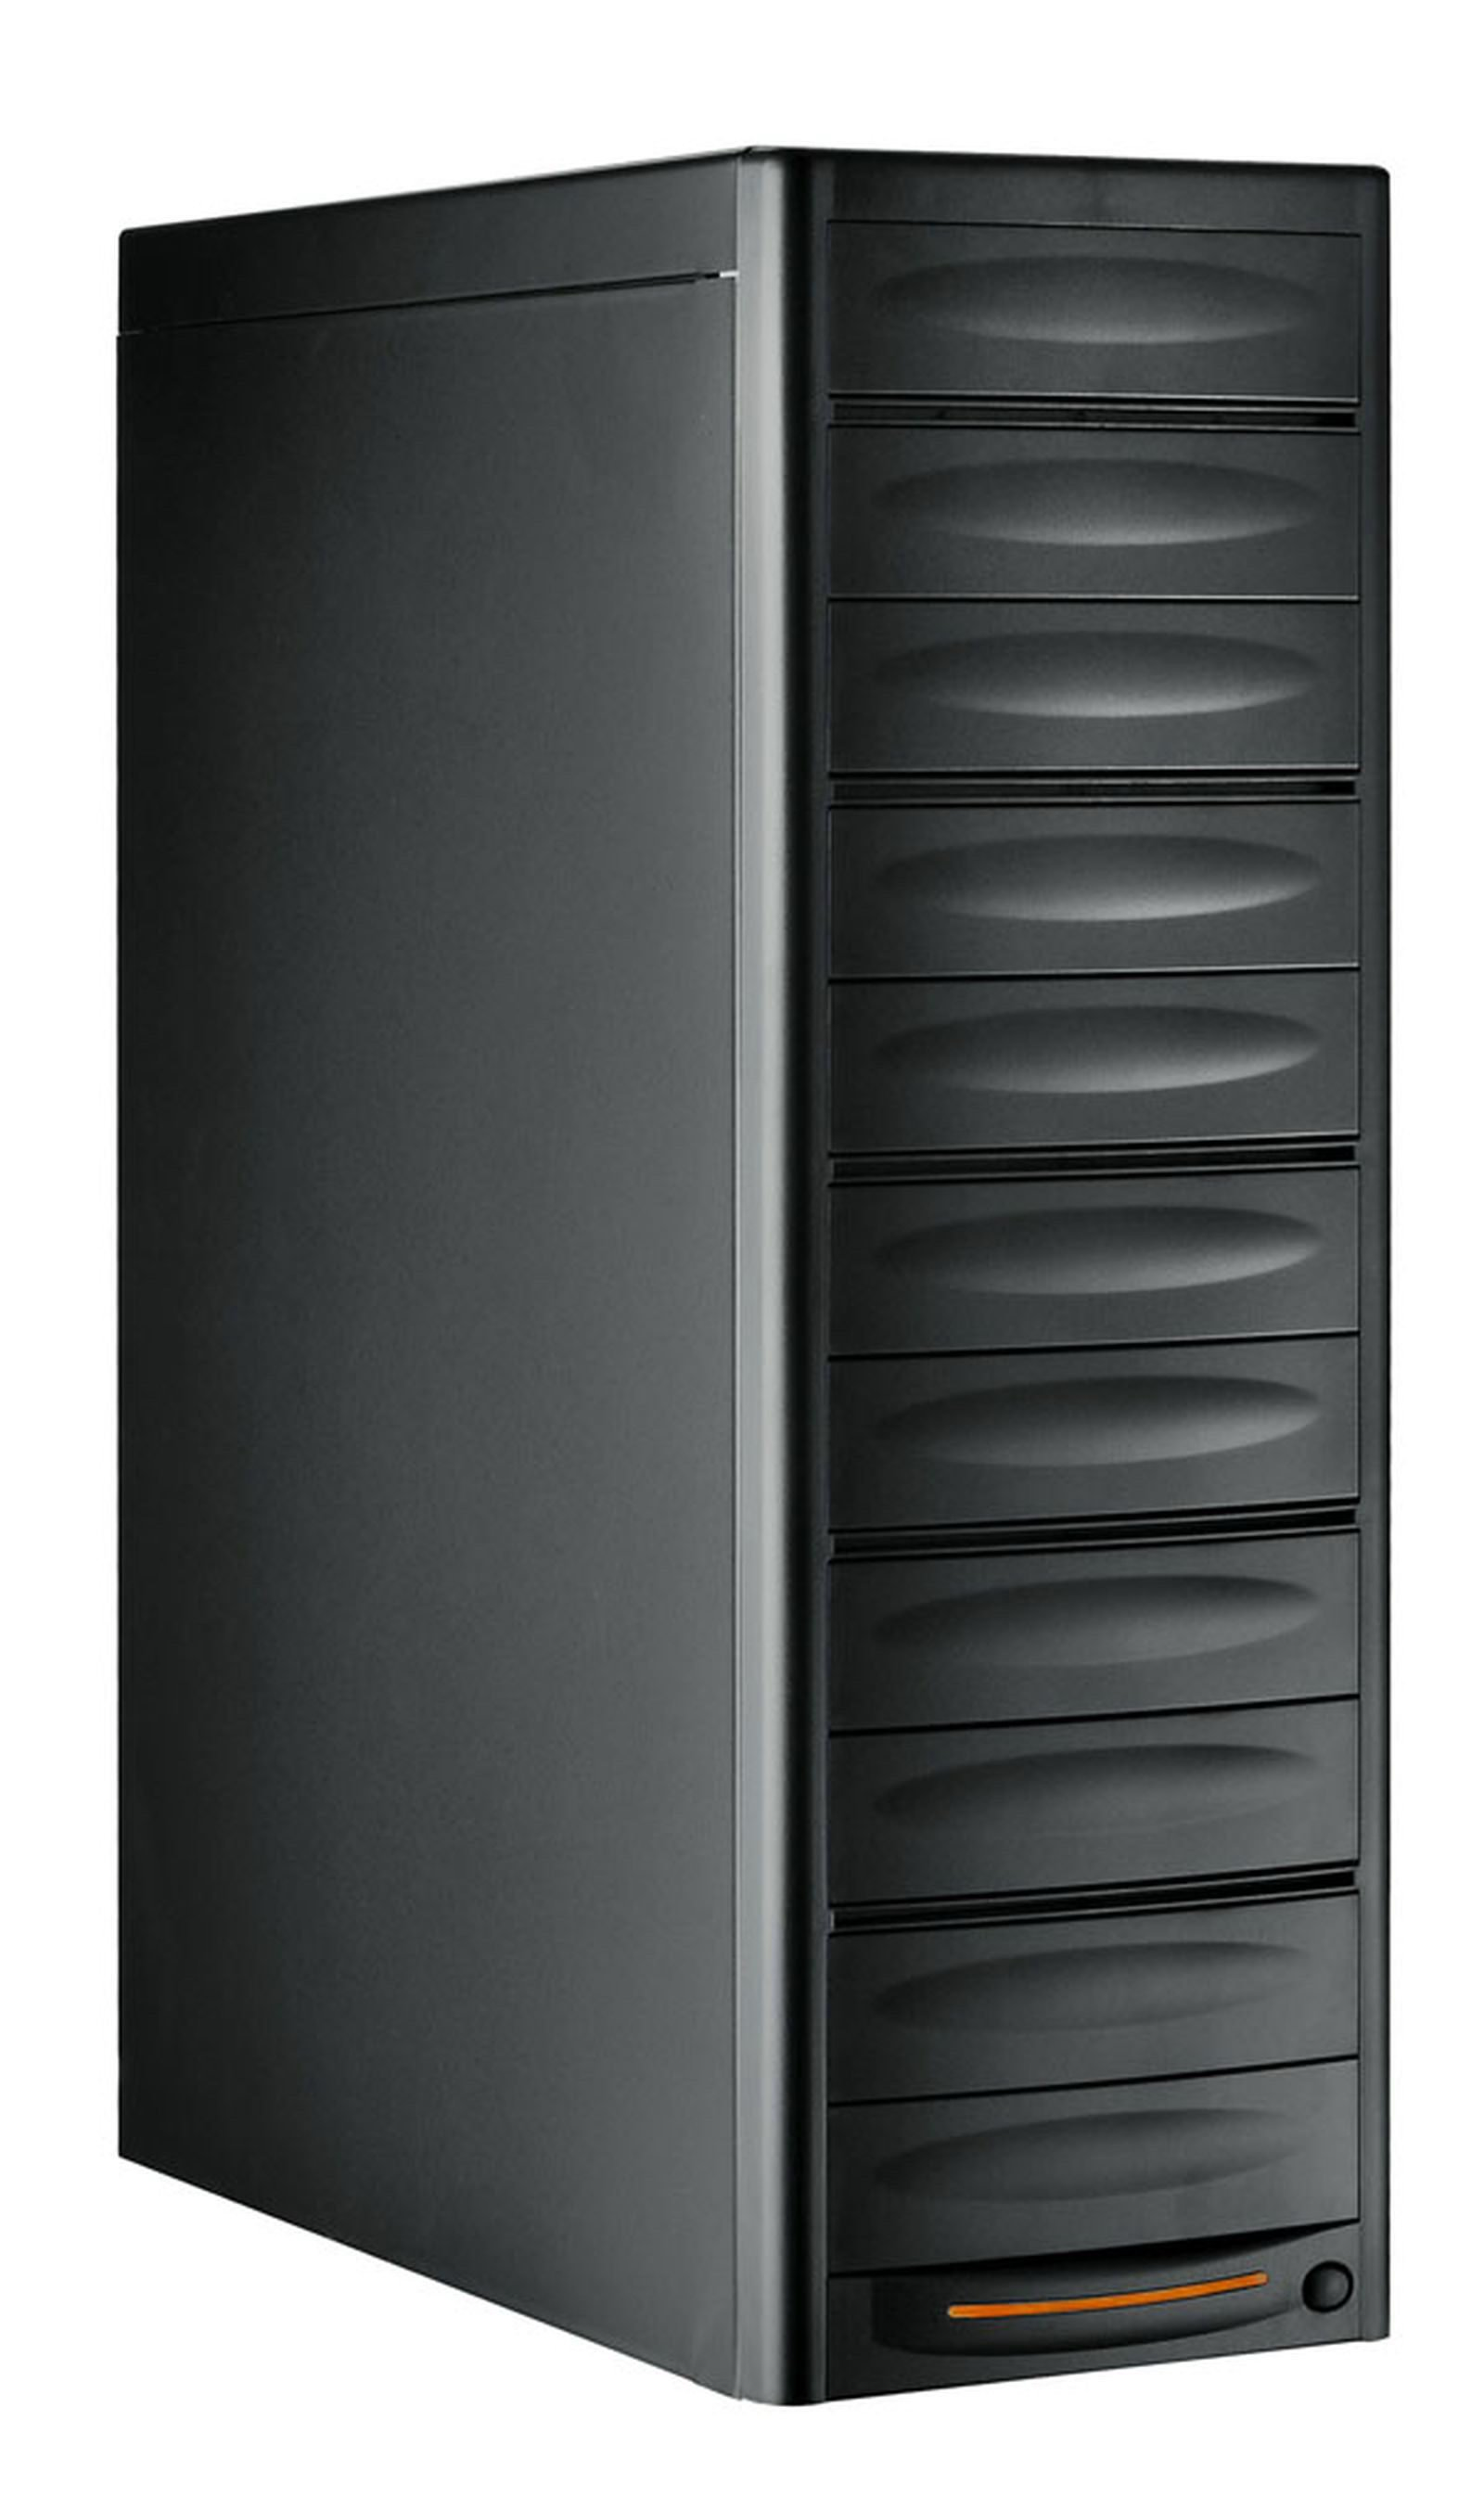 [FD-H511] 11 Bay Duplicator Case